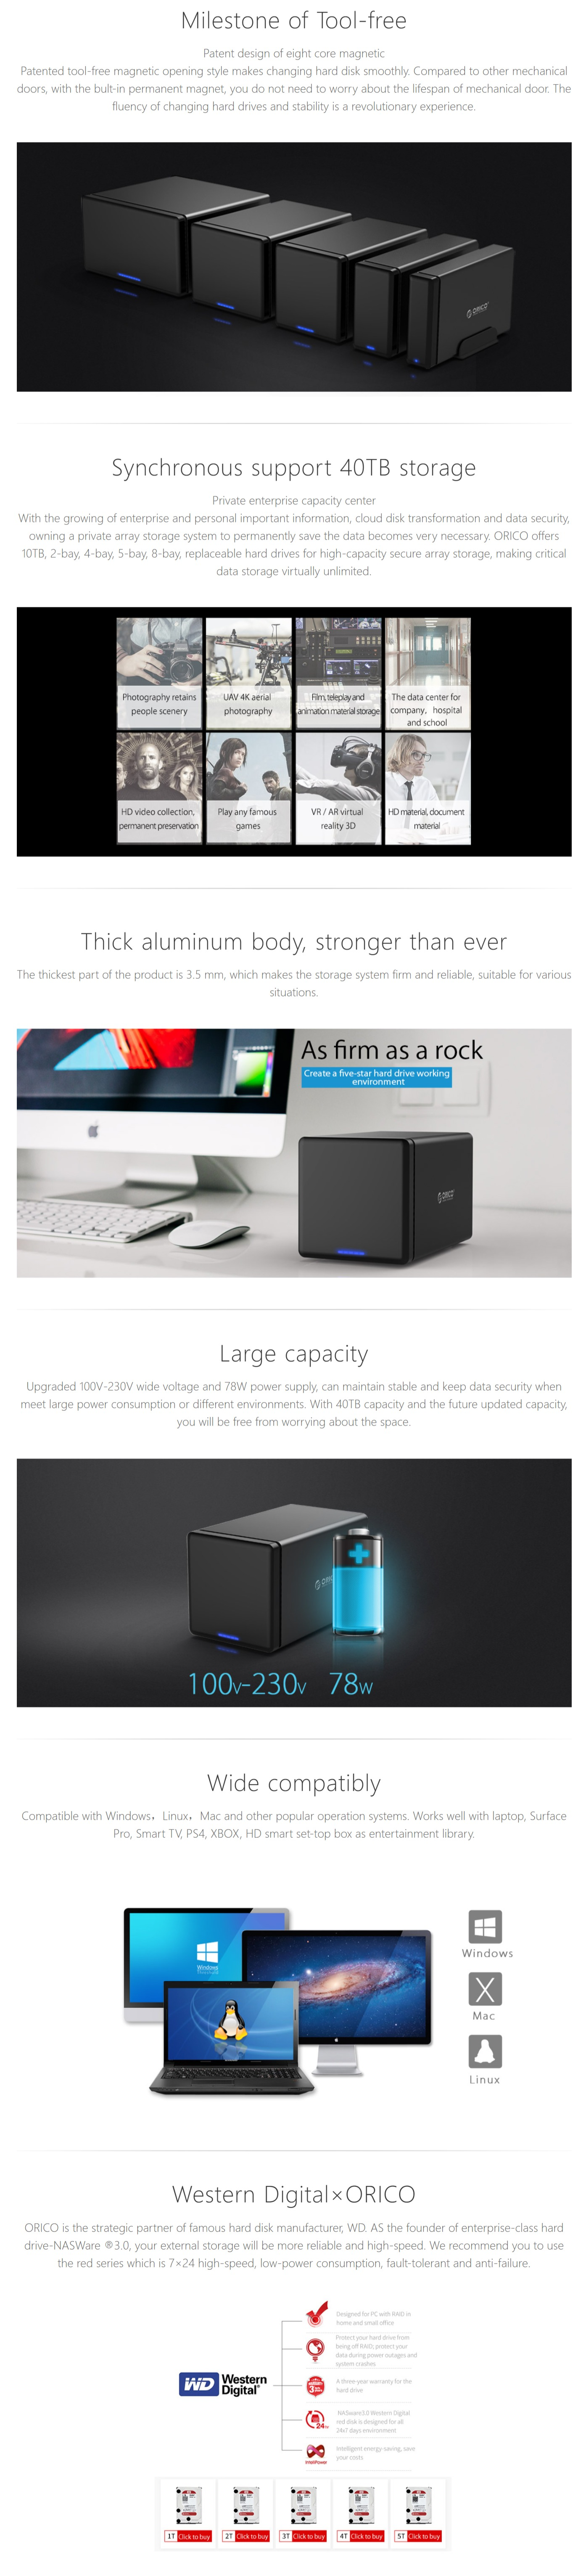 A large marketing image providing additional information about the product ORICO 4 Bay USB3.0 Hard Drive Enclosure - Additional alt info not provided